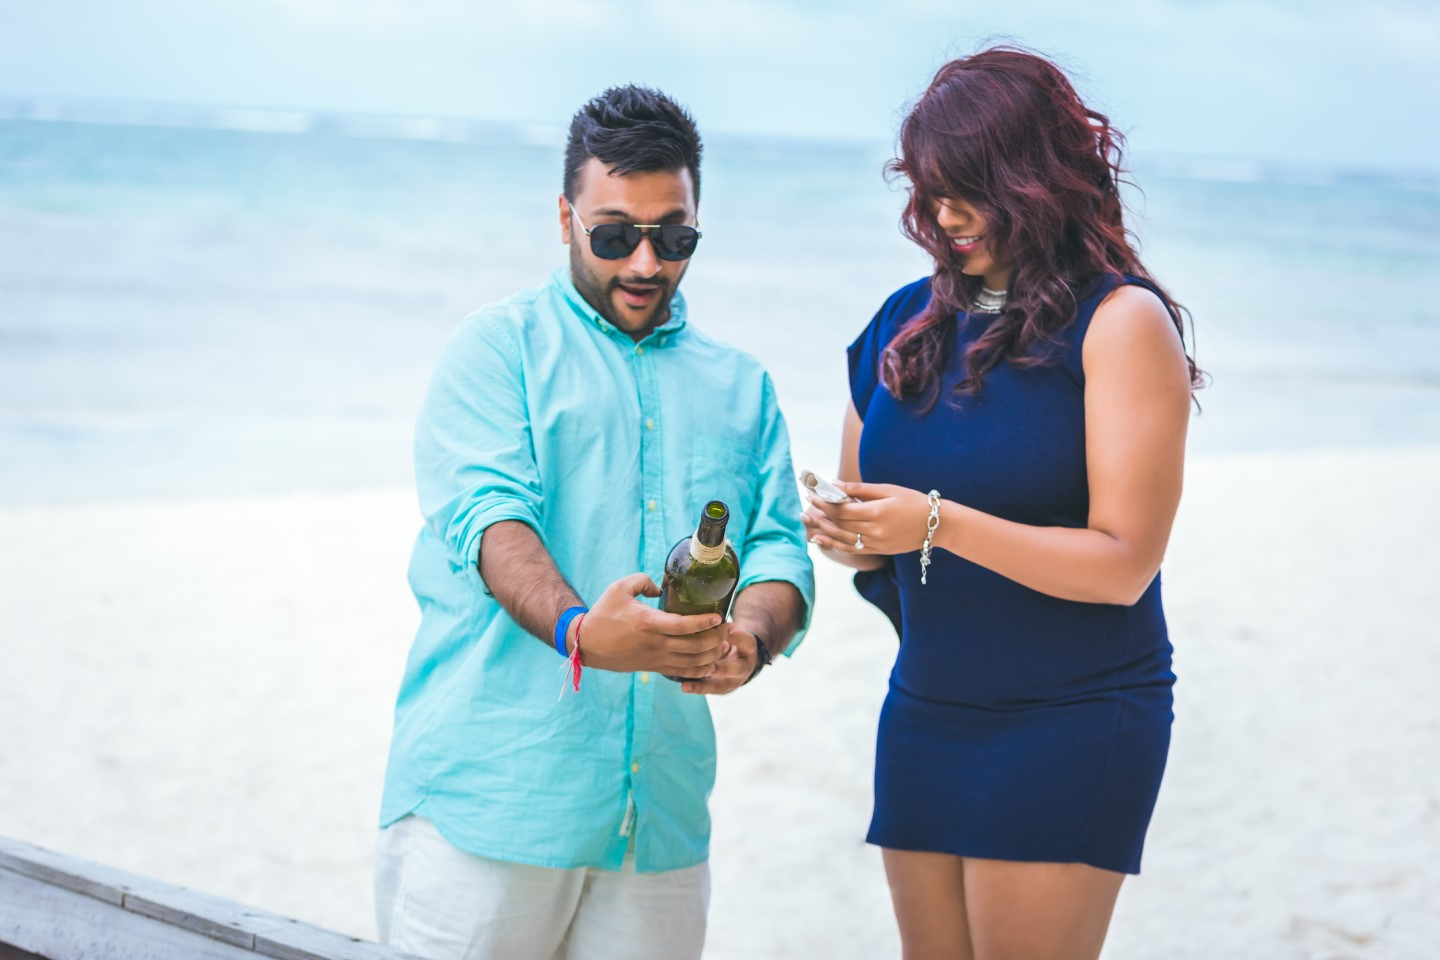 dominican republic dating and marriage You'll find women in the us or in the dominican republic the company calls itself a marriage agency 3 dating sites to meet dominican women ezinearticlescom.